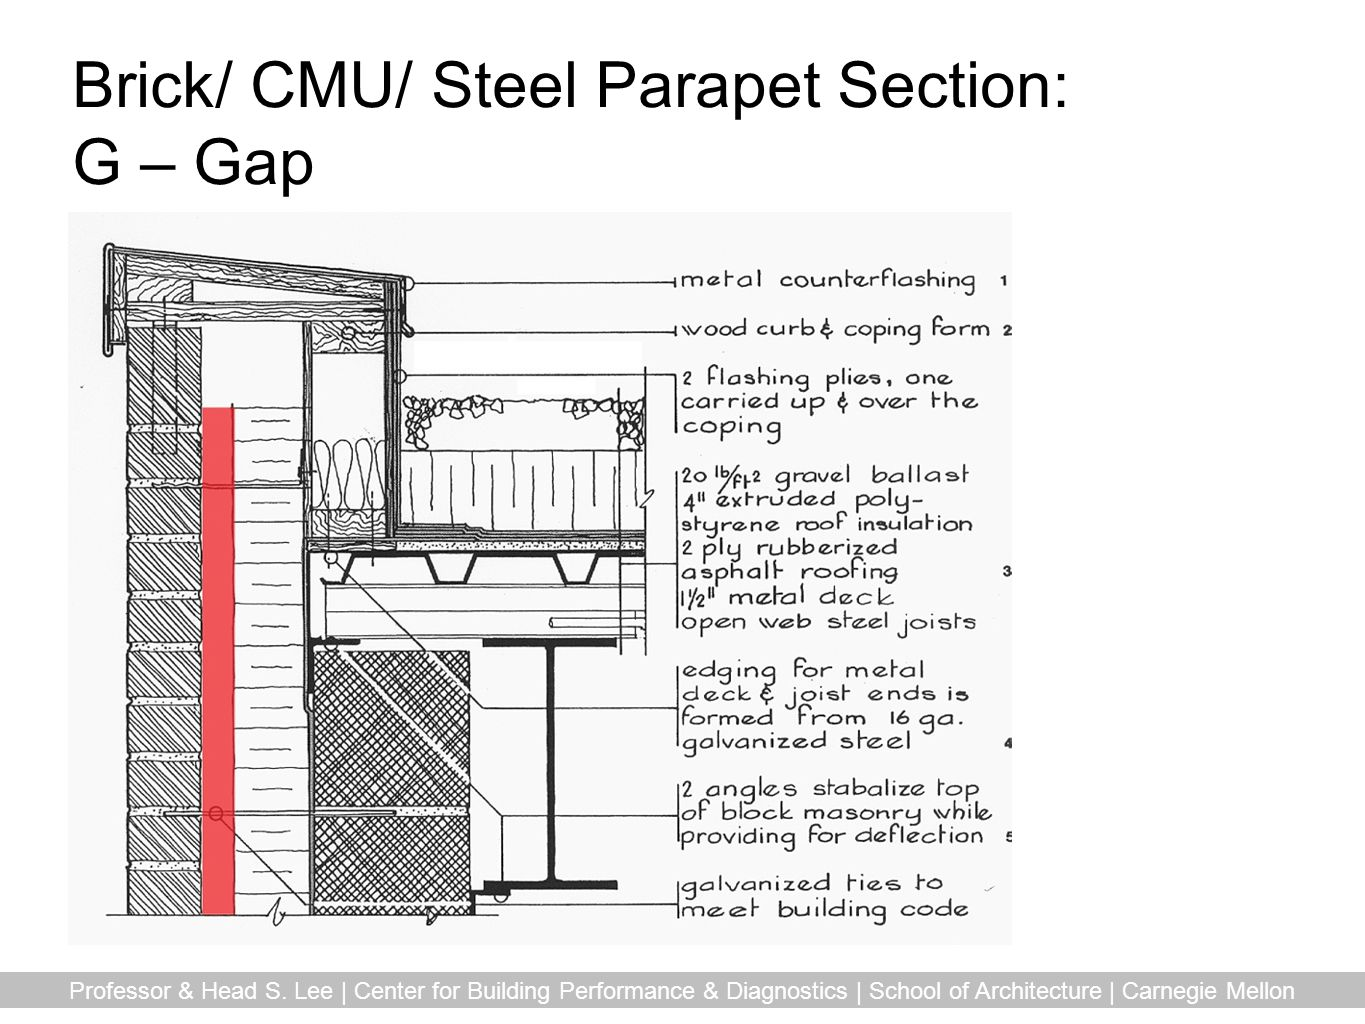 Brick/ CMU/ Steel Parapet Section: G – Gap